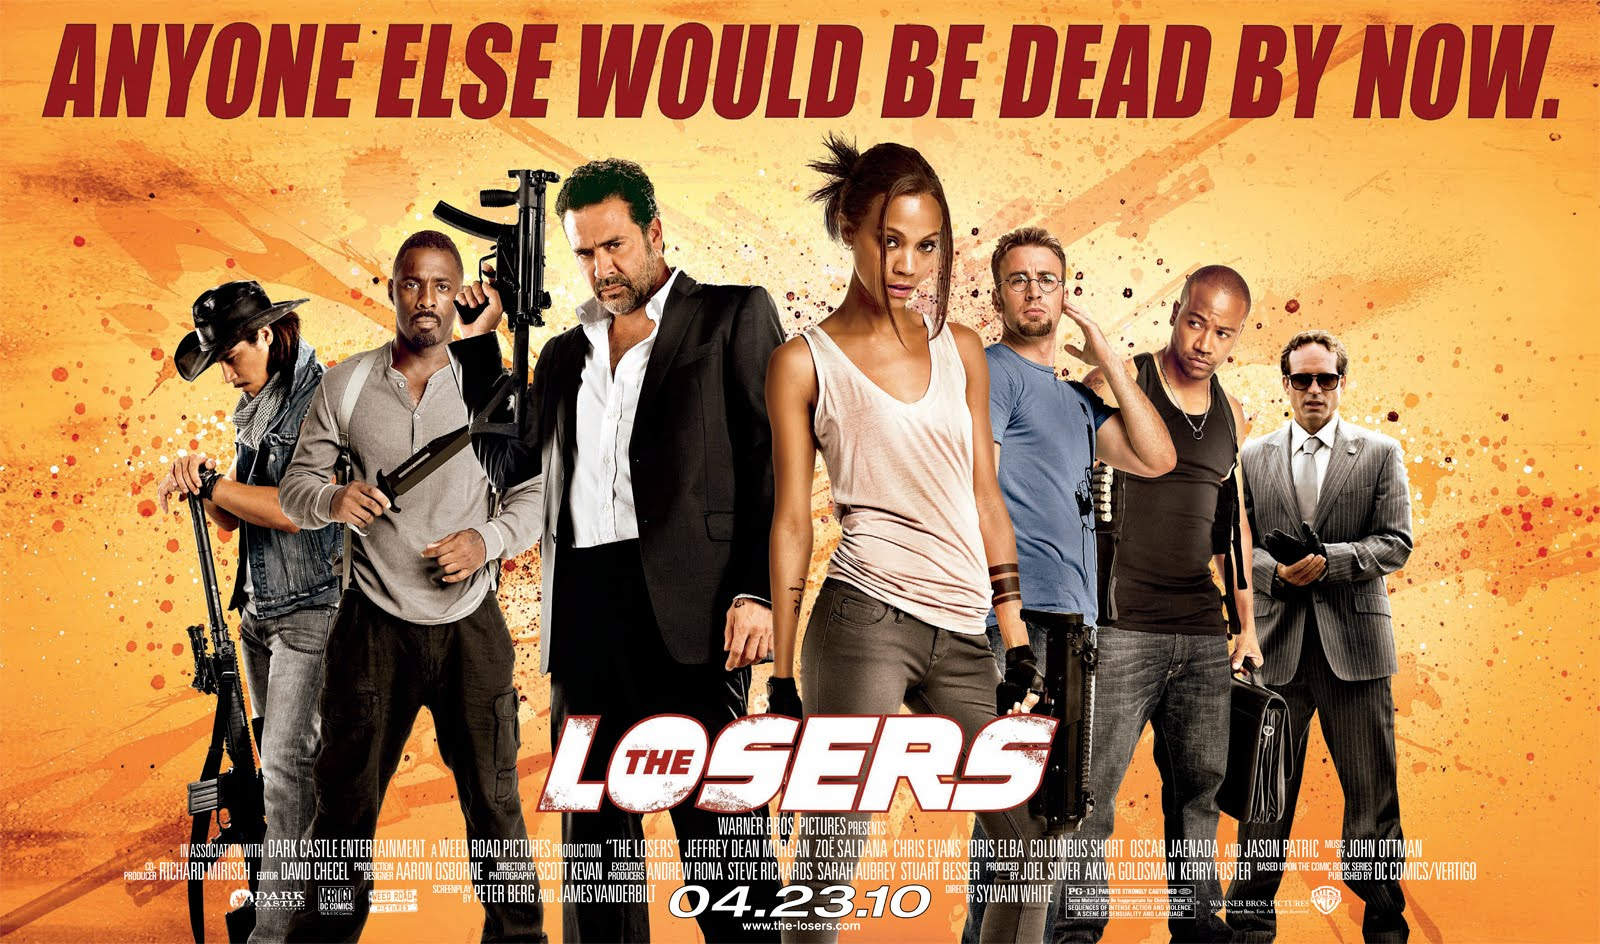 http://2.bp.blogspot.com/_rNrmTbbbE-Q/S65bweNAMDI/AAAAAAAADTM/s7ctghgtiAk/s1600/the-losers-movie-poster-entire-cast.jpg